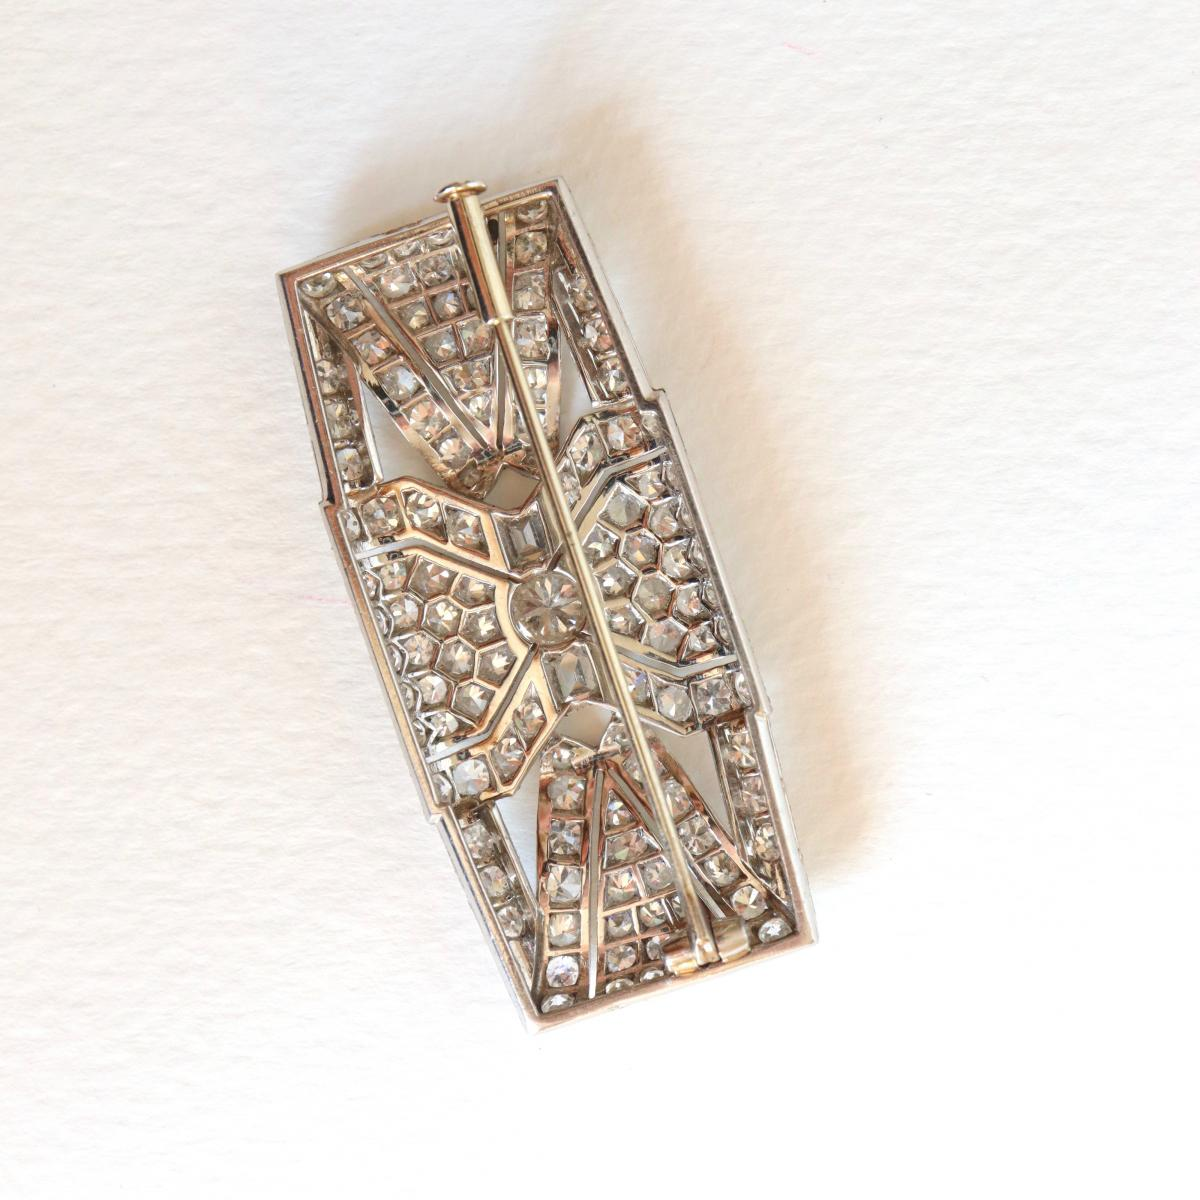 Brooch Art Deco Plate In Platinum And White Gold 18 Carats 1930-40-photo-4